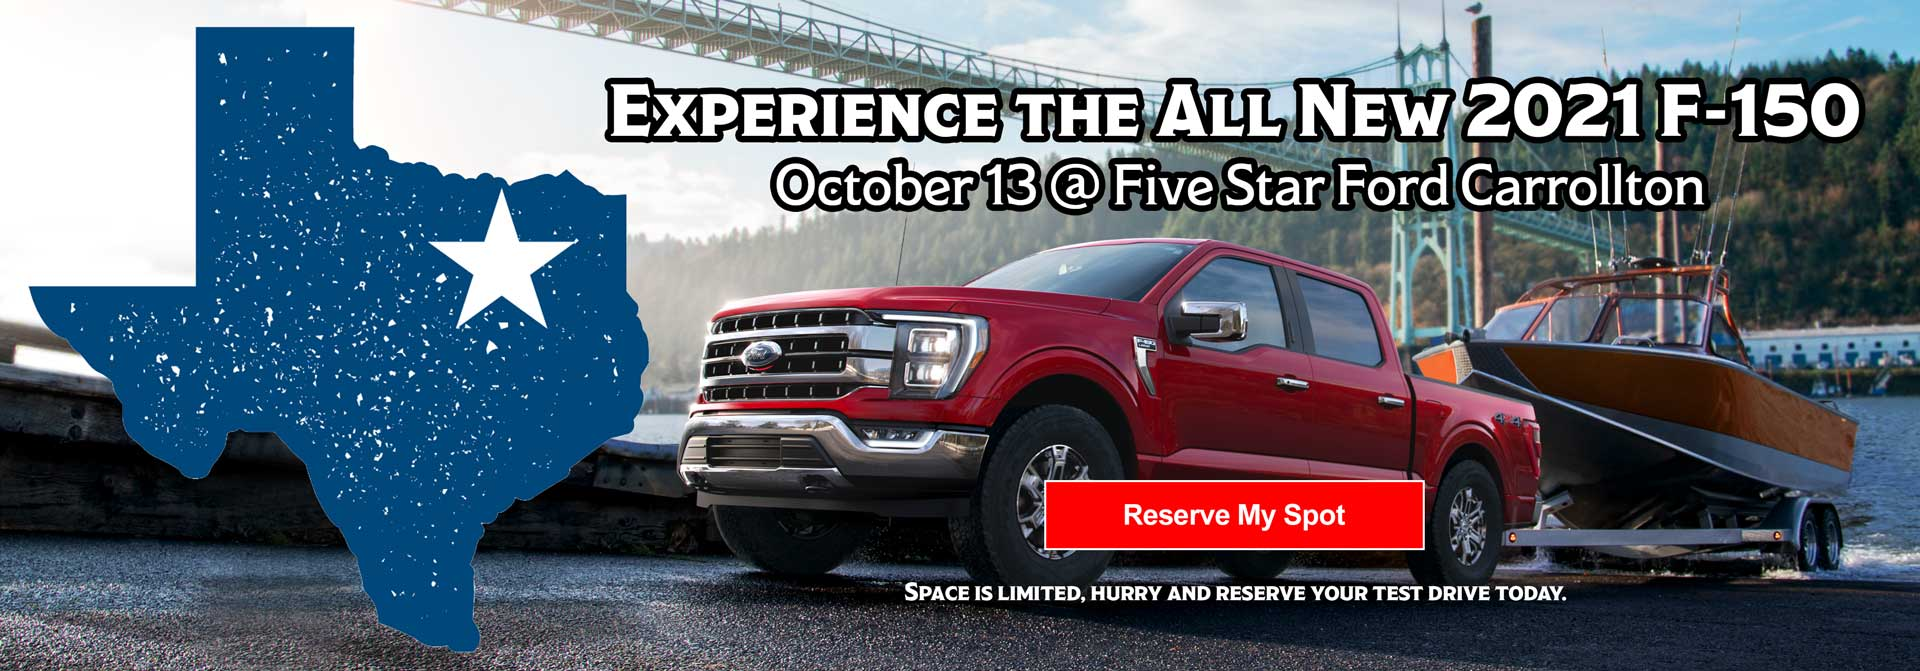 Spford F150 Reservation